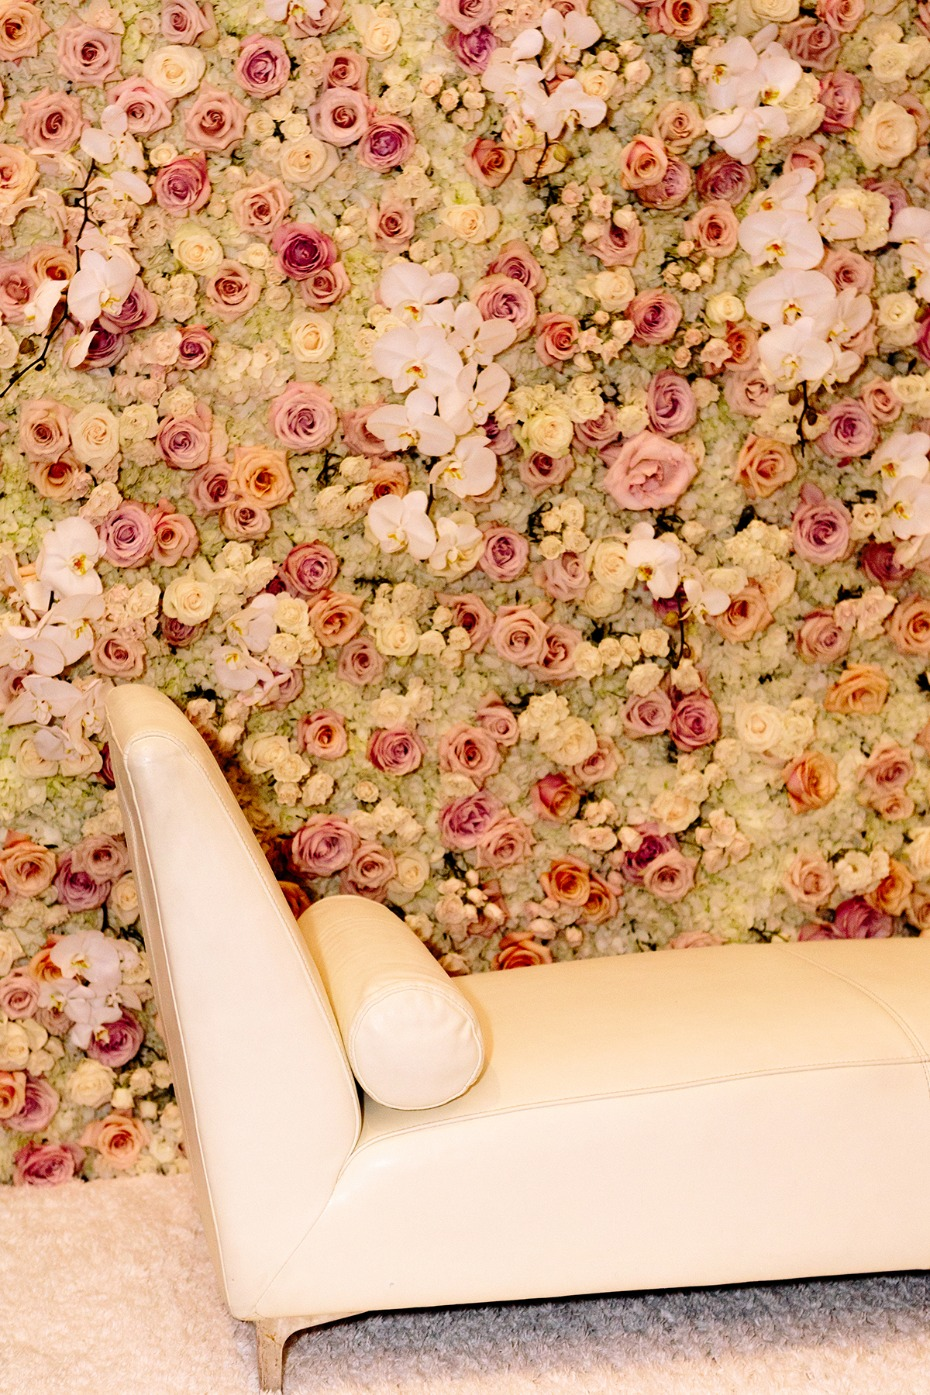 Flower wall photo booth backdrdop